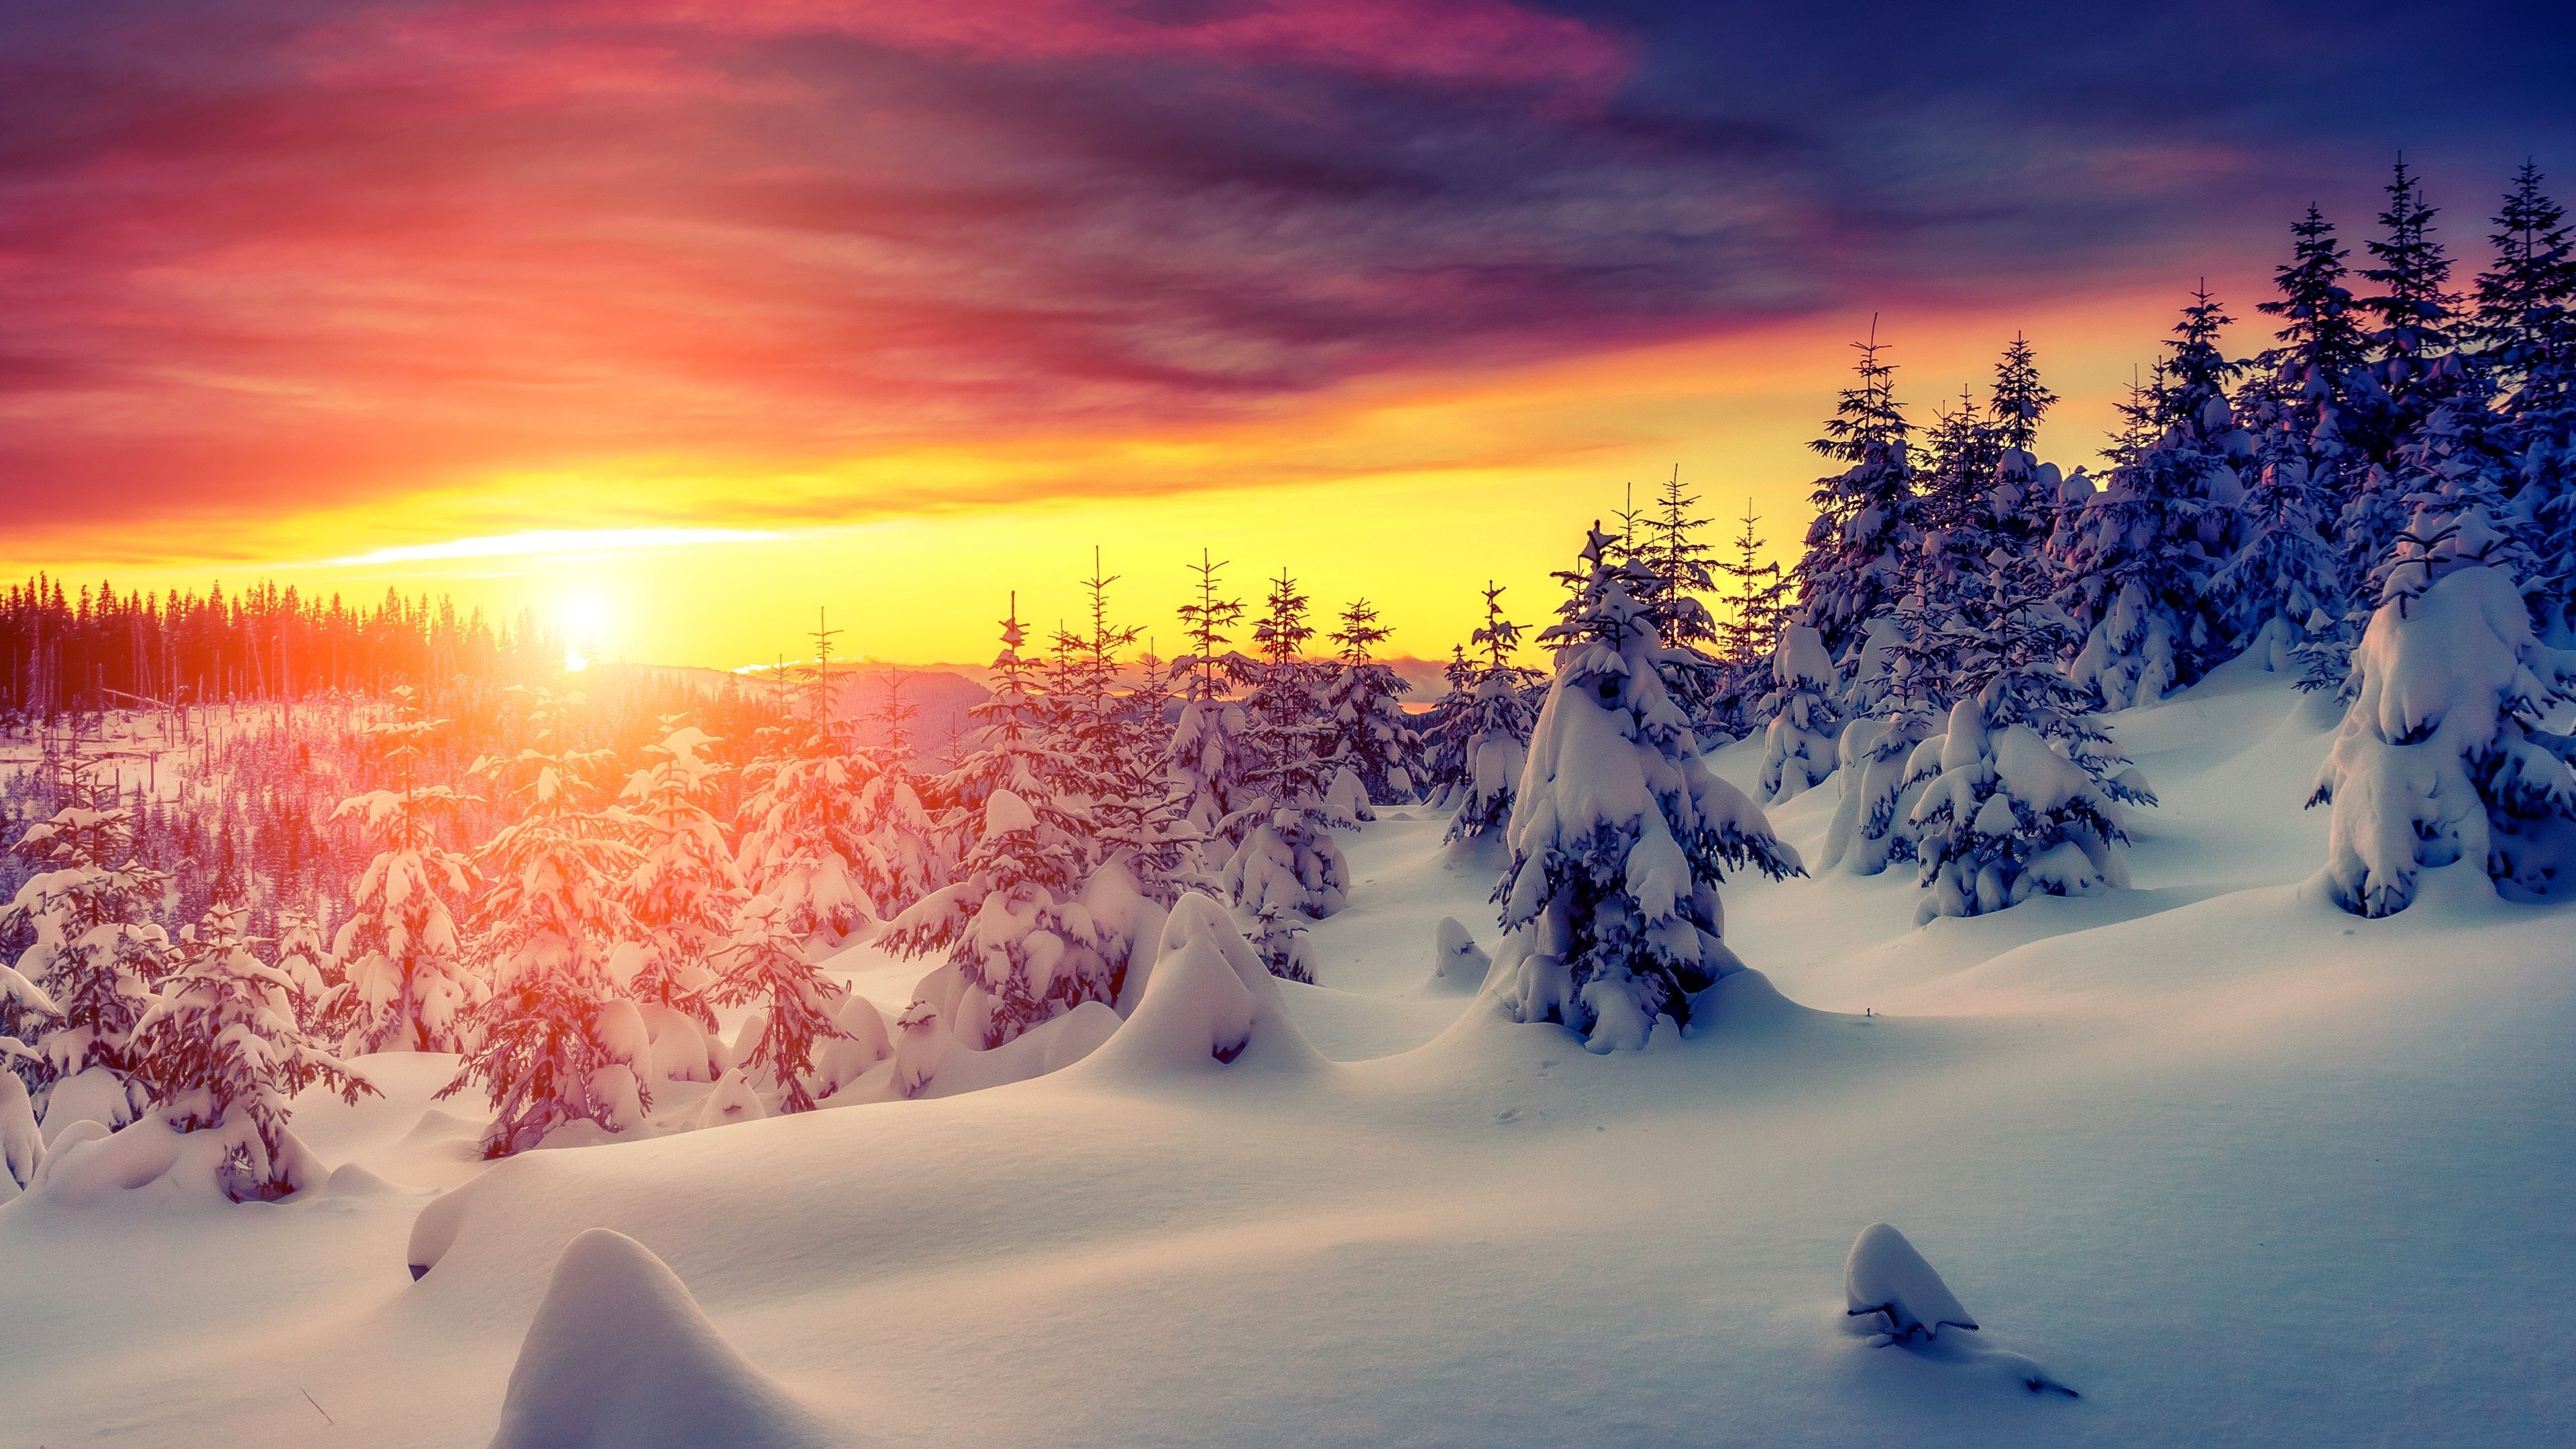 Snow 4k Wallpapers Top Free Snow 4k Backgrounds Wallpaperaccess